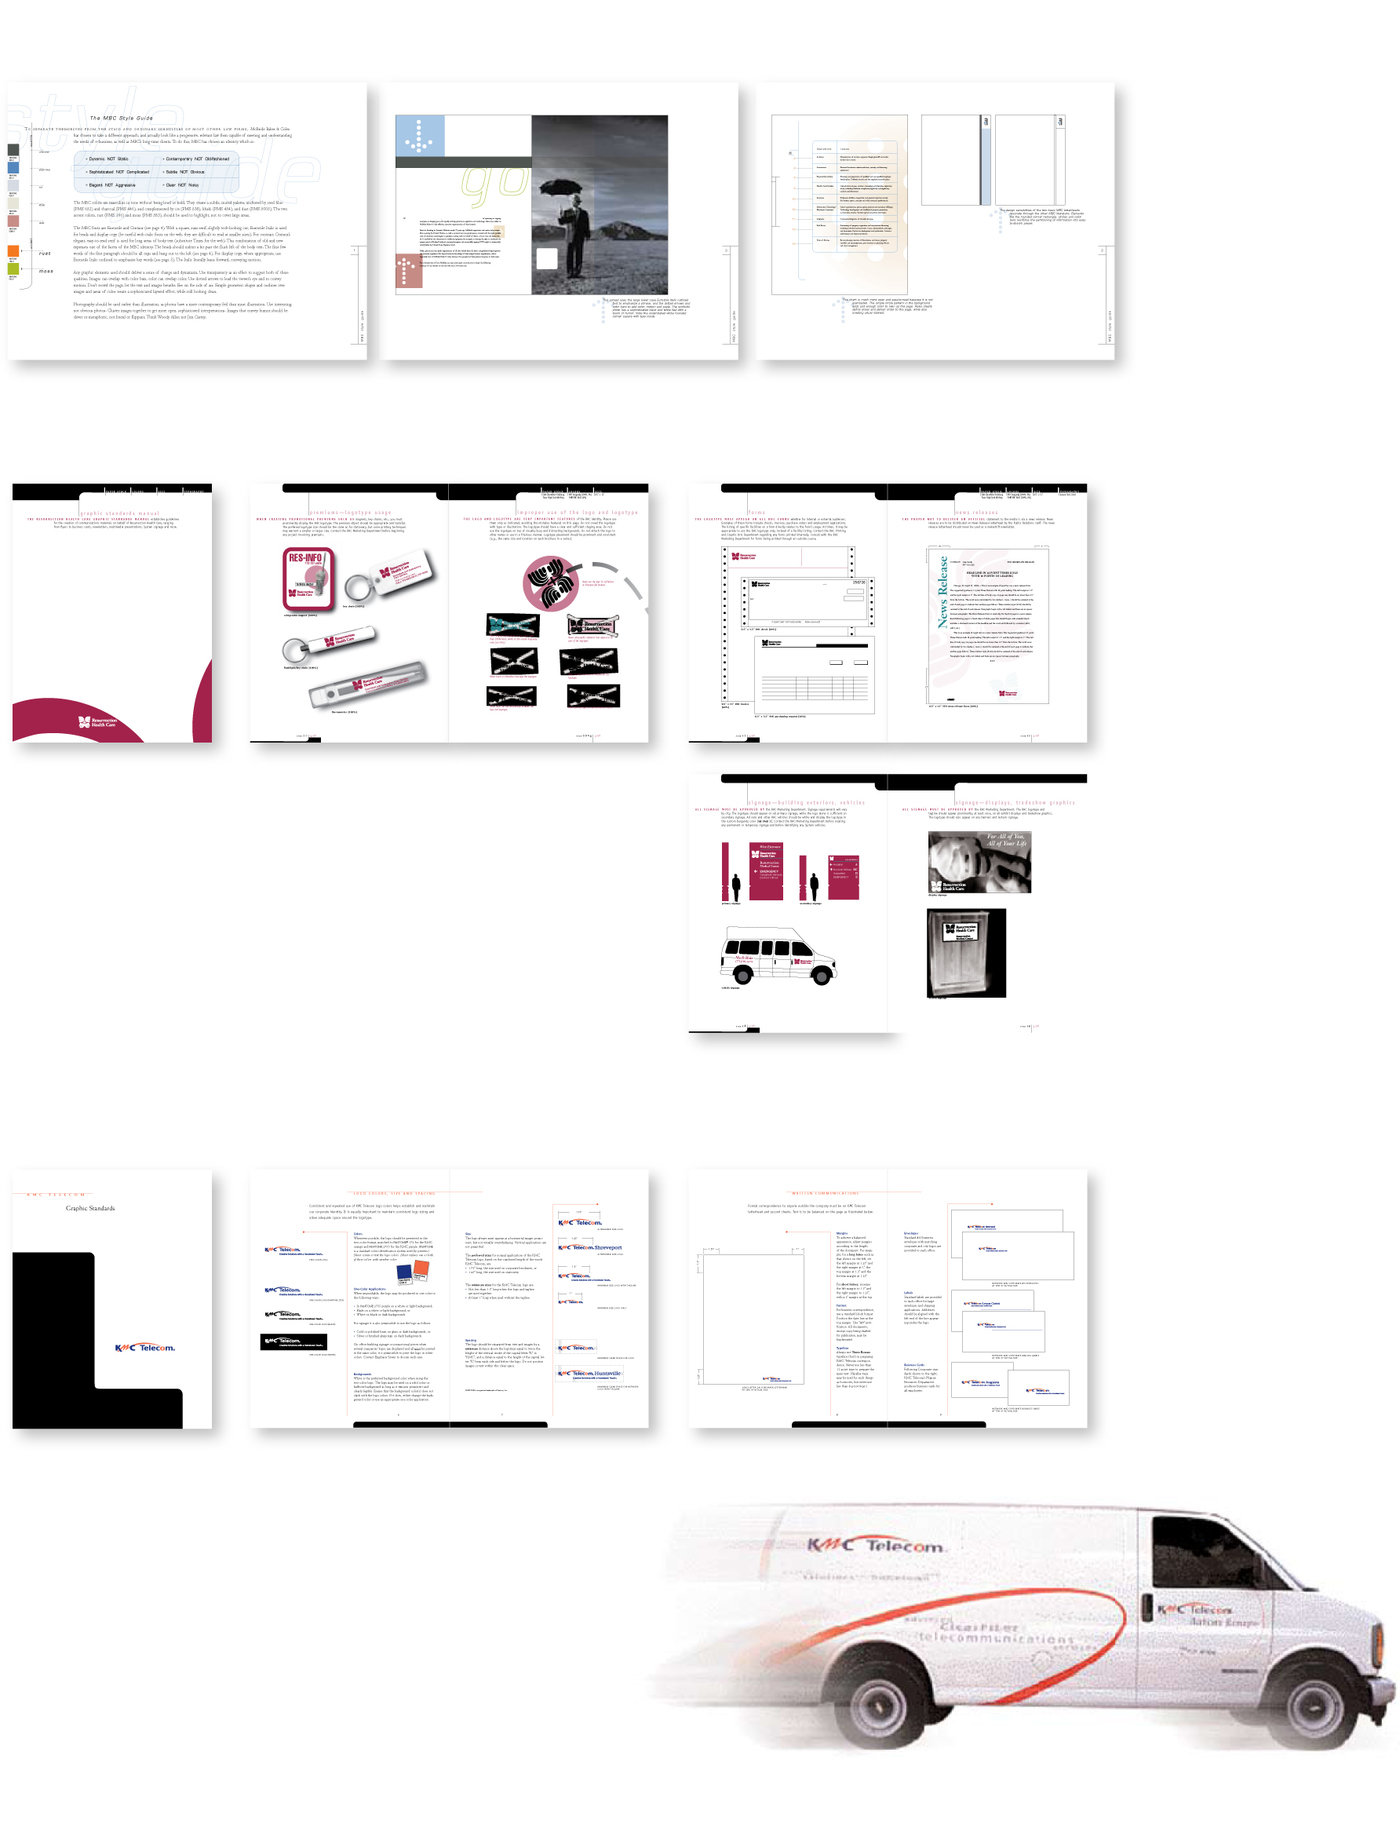 Logos and Identities by Craig Niedermaier at Coroflot.com